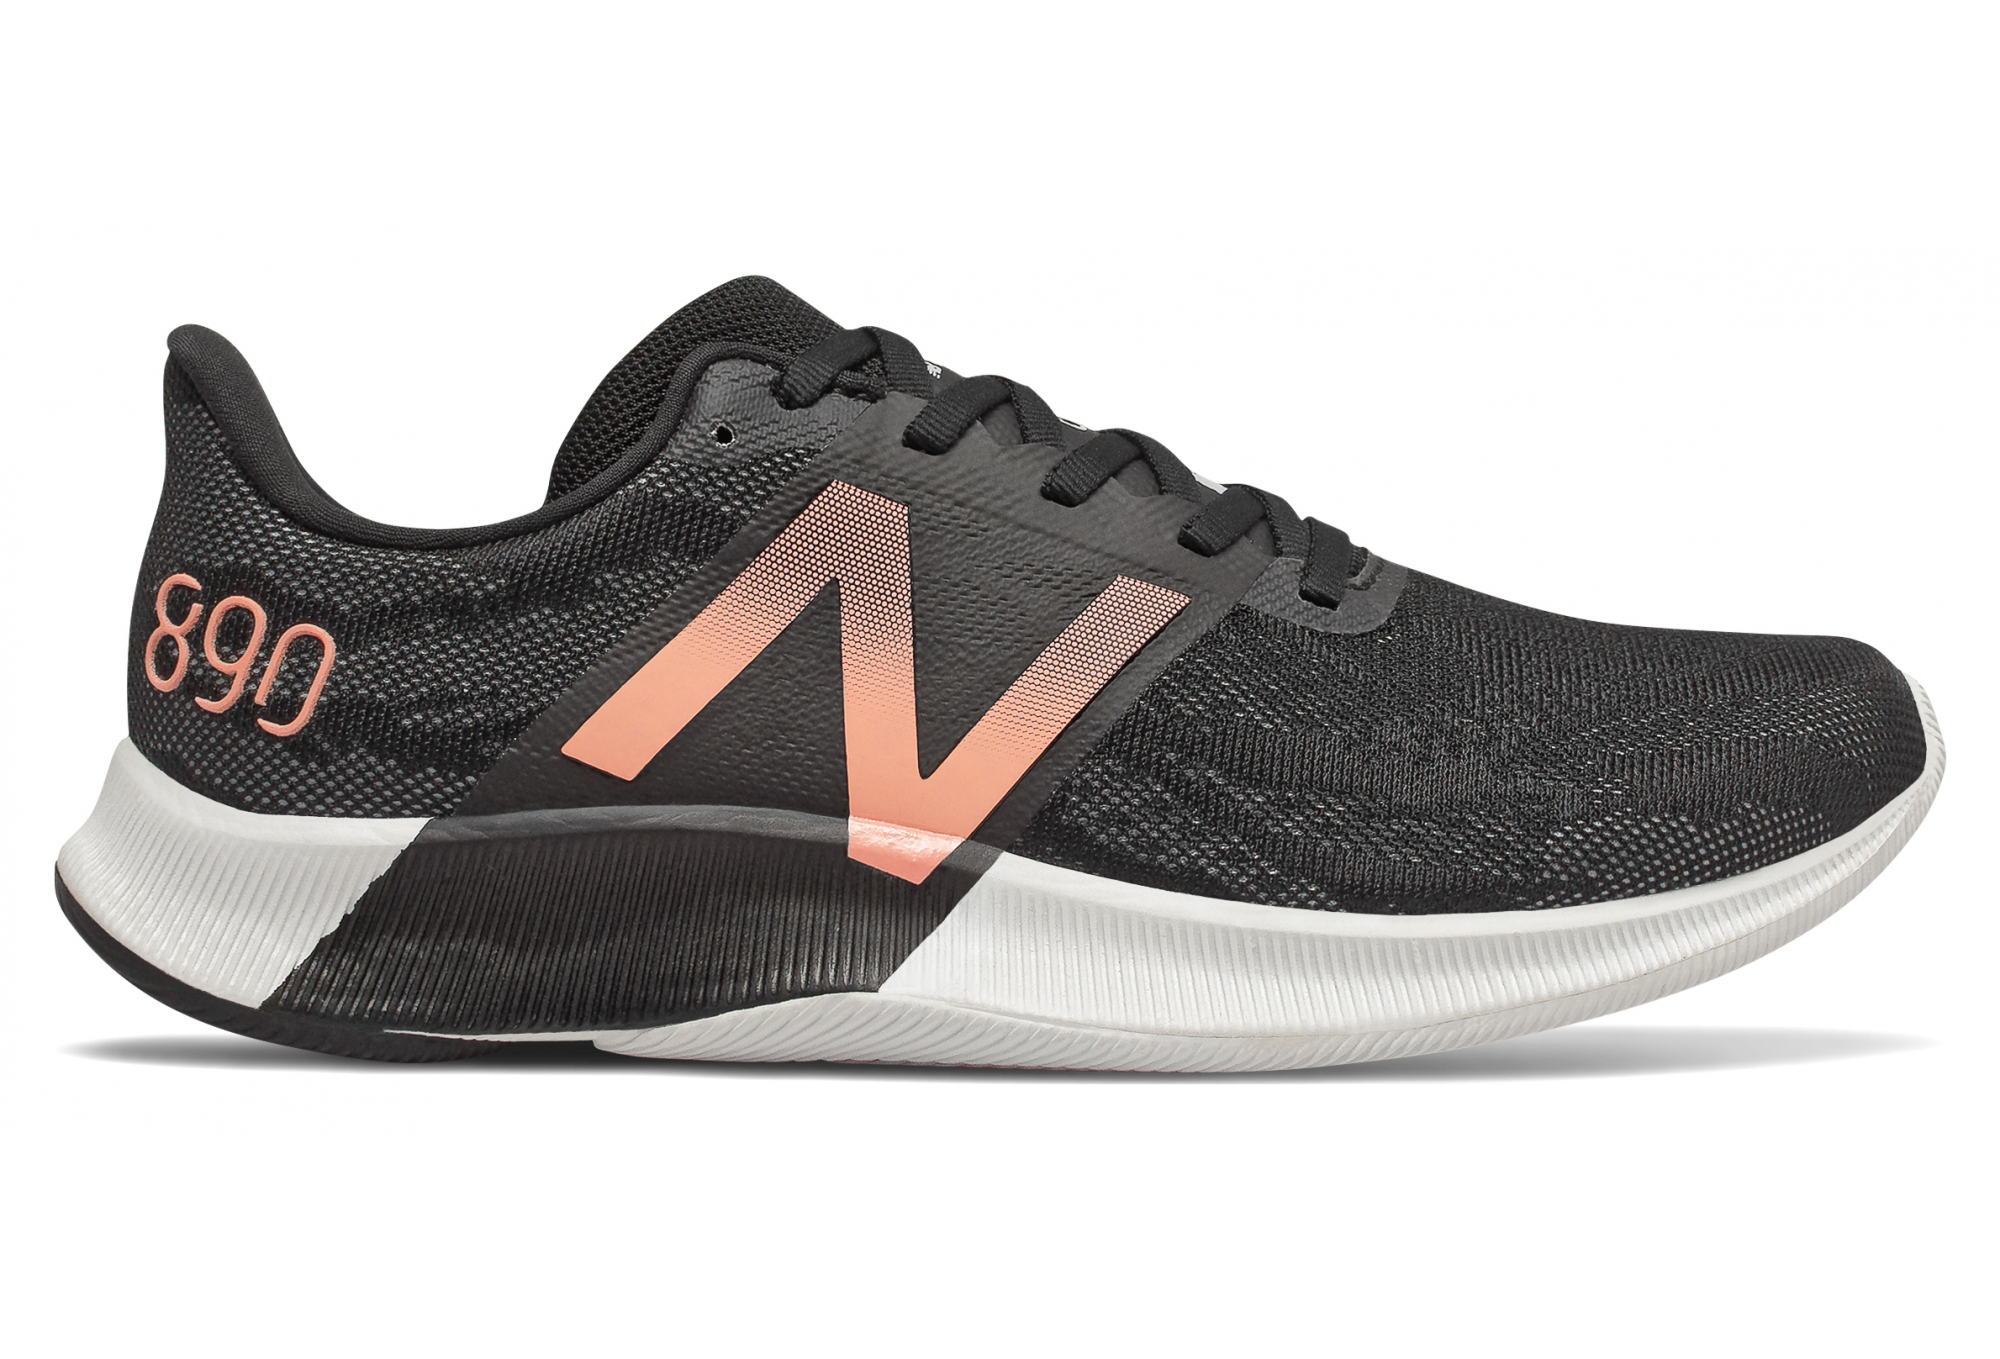 New Balance Fuelcell 890 V8 Black Pink Women